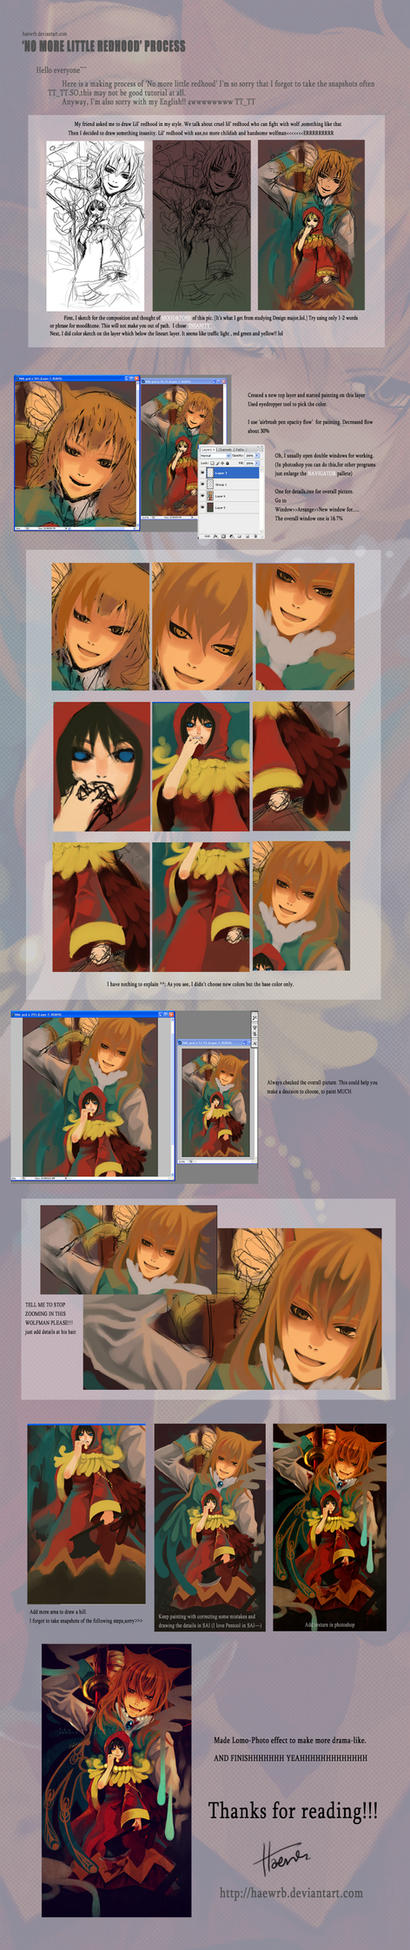 Making of No more lil redhood by isfairytell